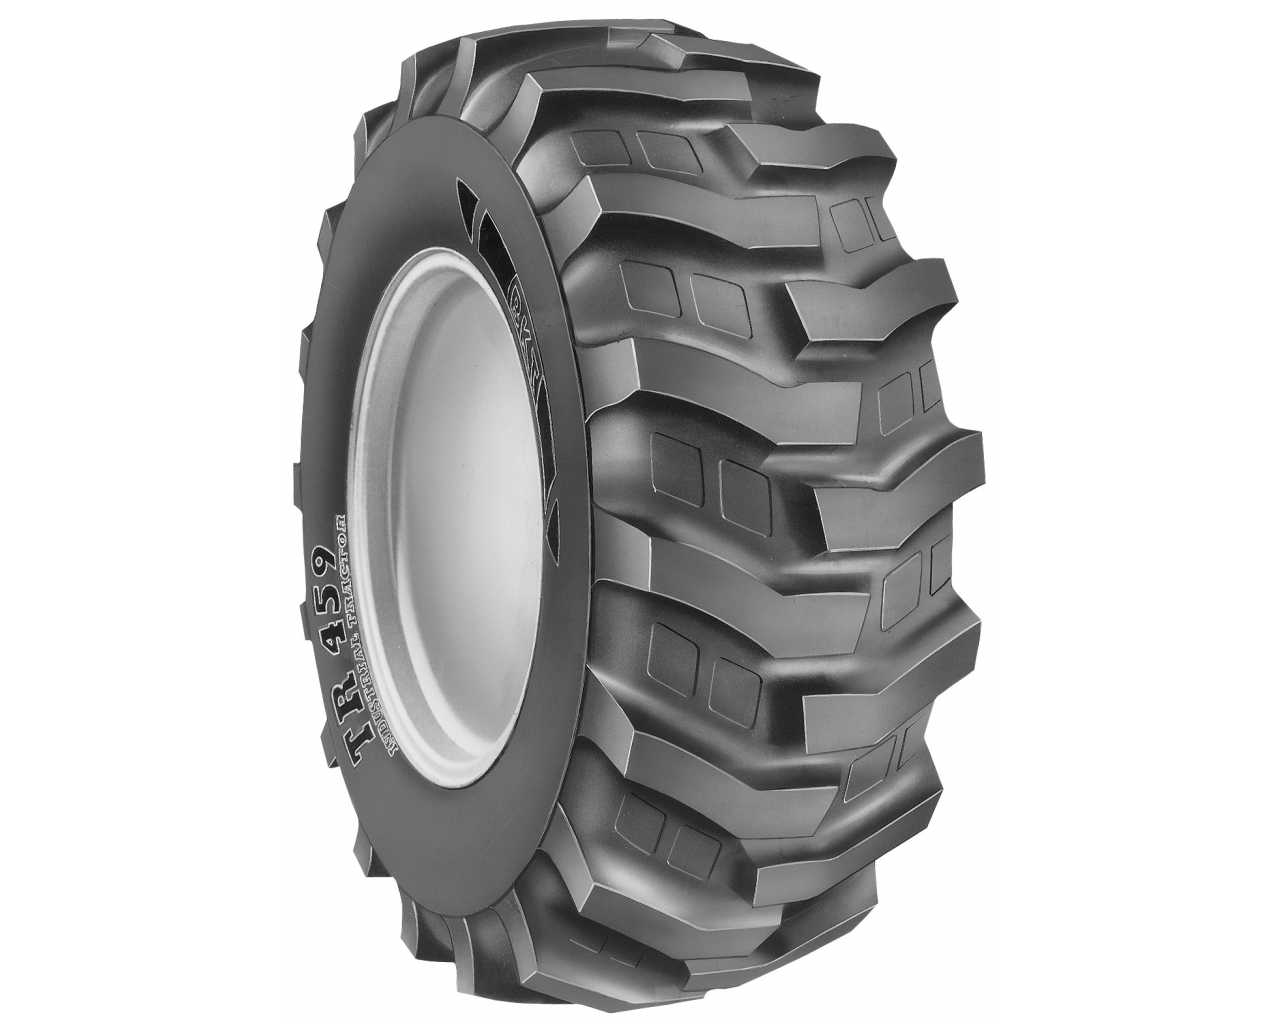 Compare Tire Sizes >> 16.9X28 BKT TR-459 12PR TL - Buy online at Agrigear, Ireland's tyre and wheel specialists